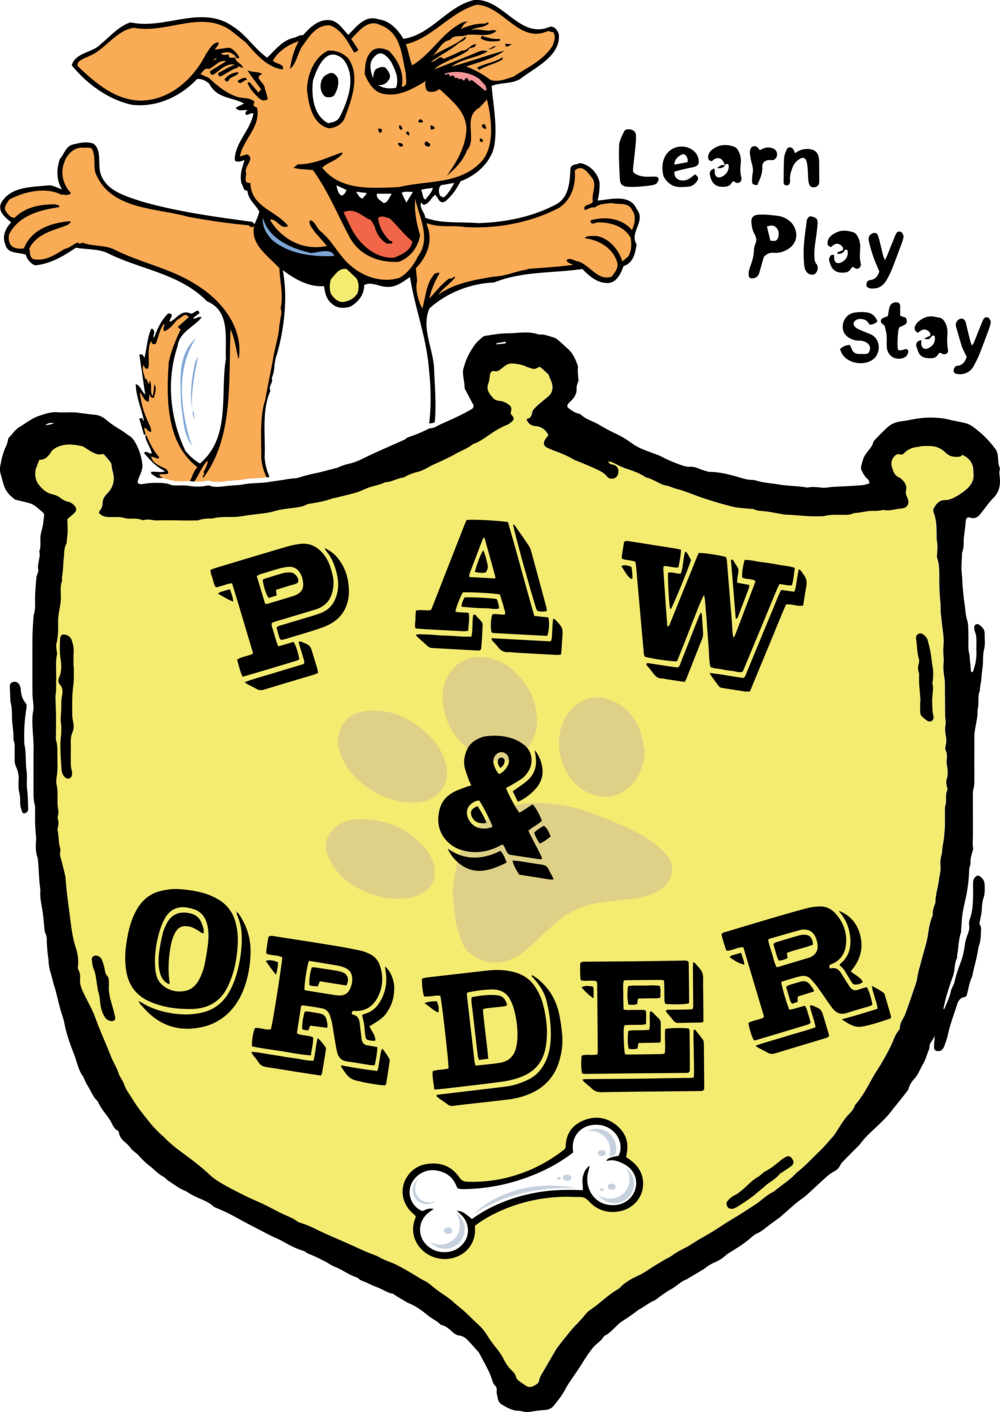 Dog peeing on fire hydrant clipart image royalty free P&O Blog — Paw & Order image royalty free